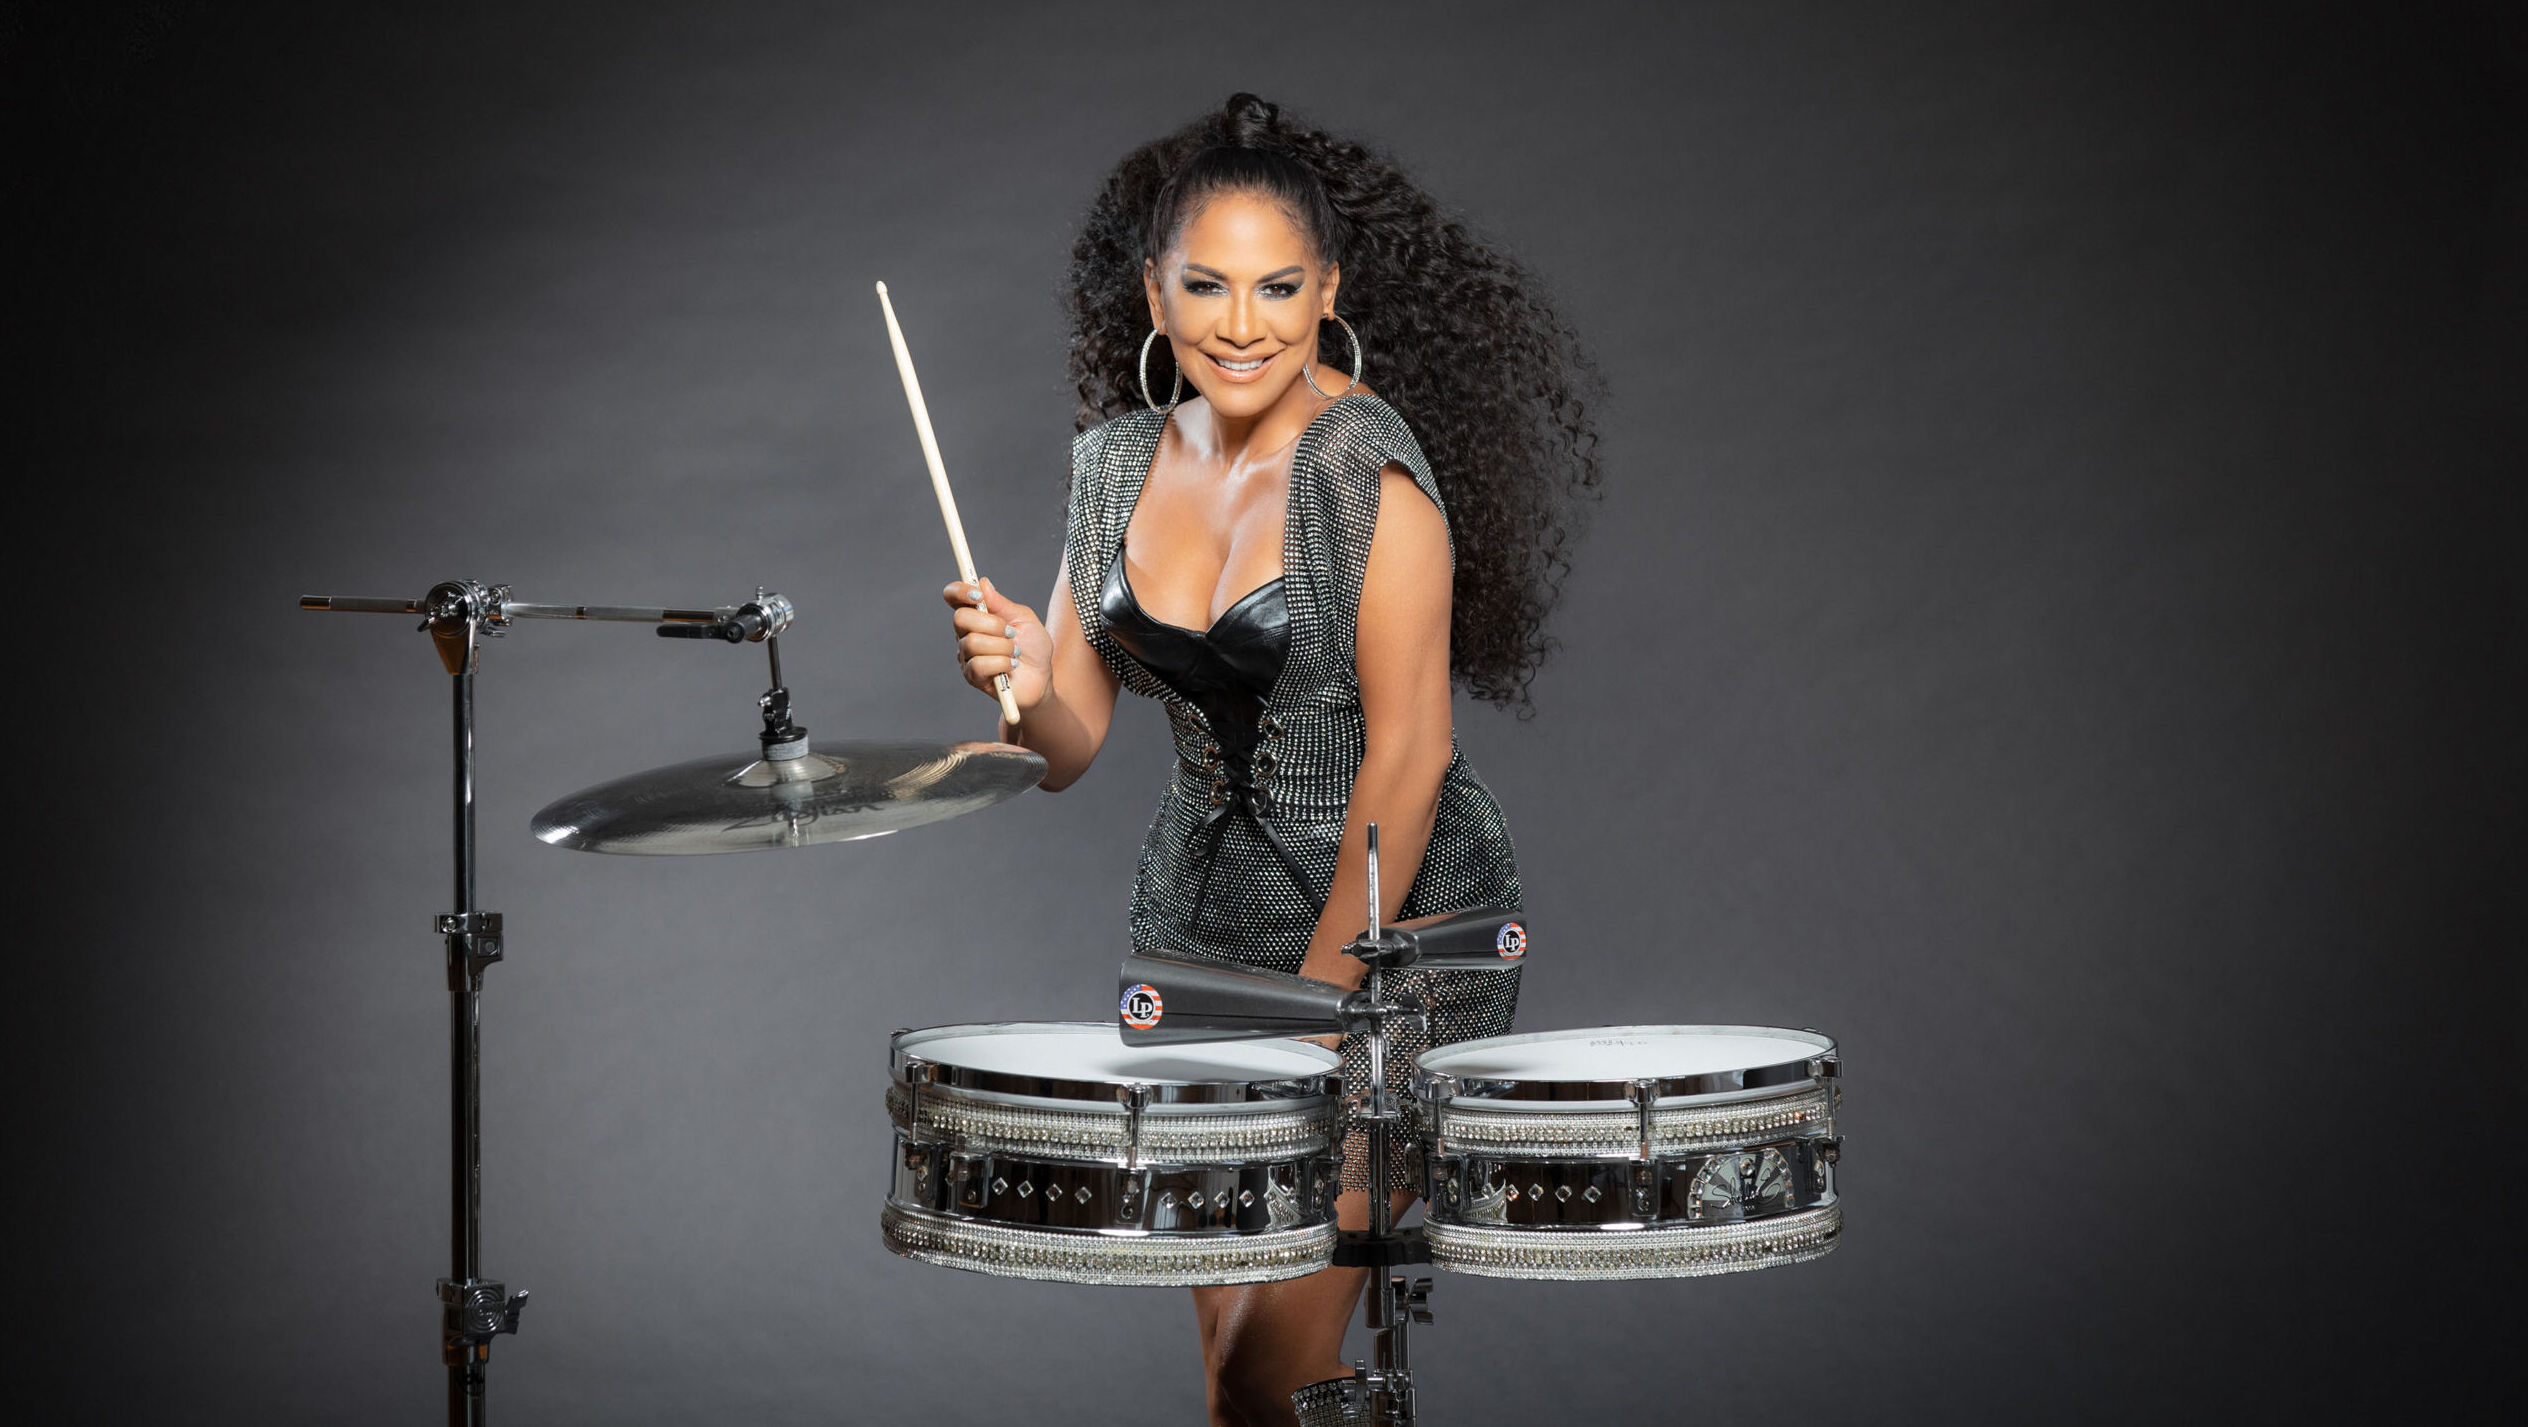 A woman with long black curly hair and tight dress stands in frot of a two-drum kit and cymbal set.